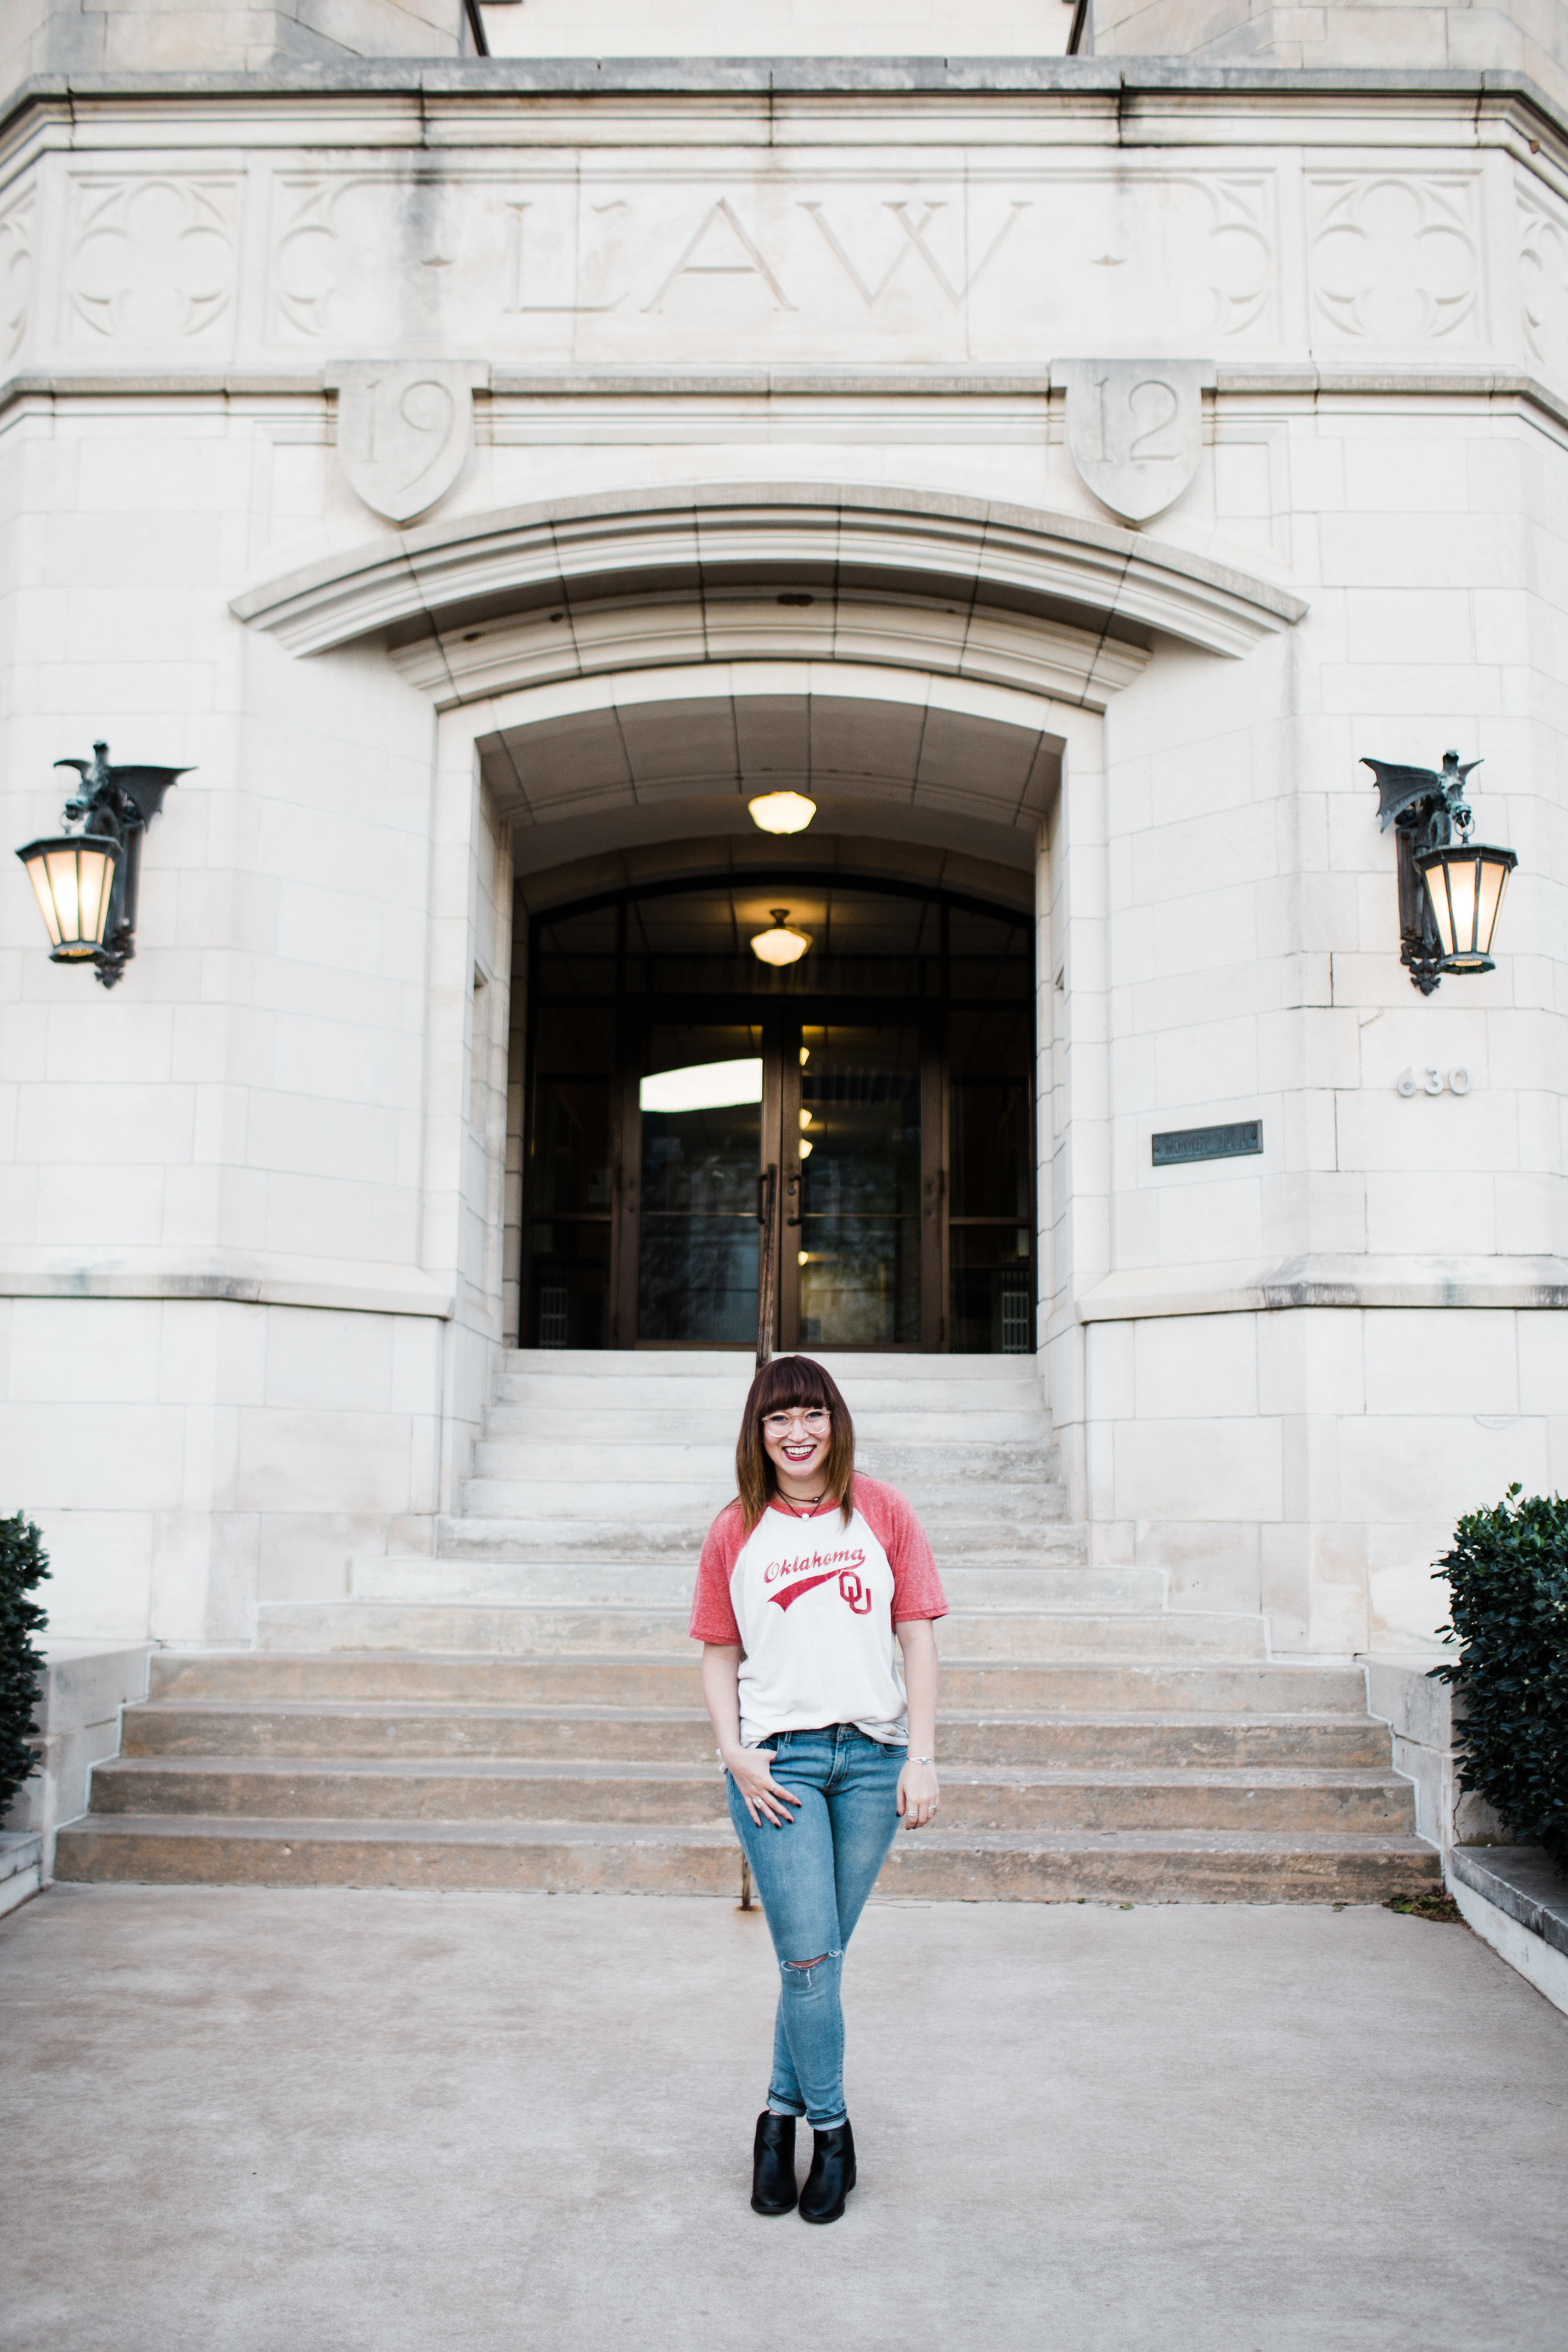 senior picture posing in front of building